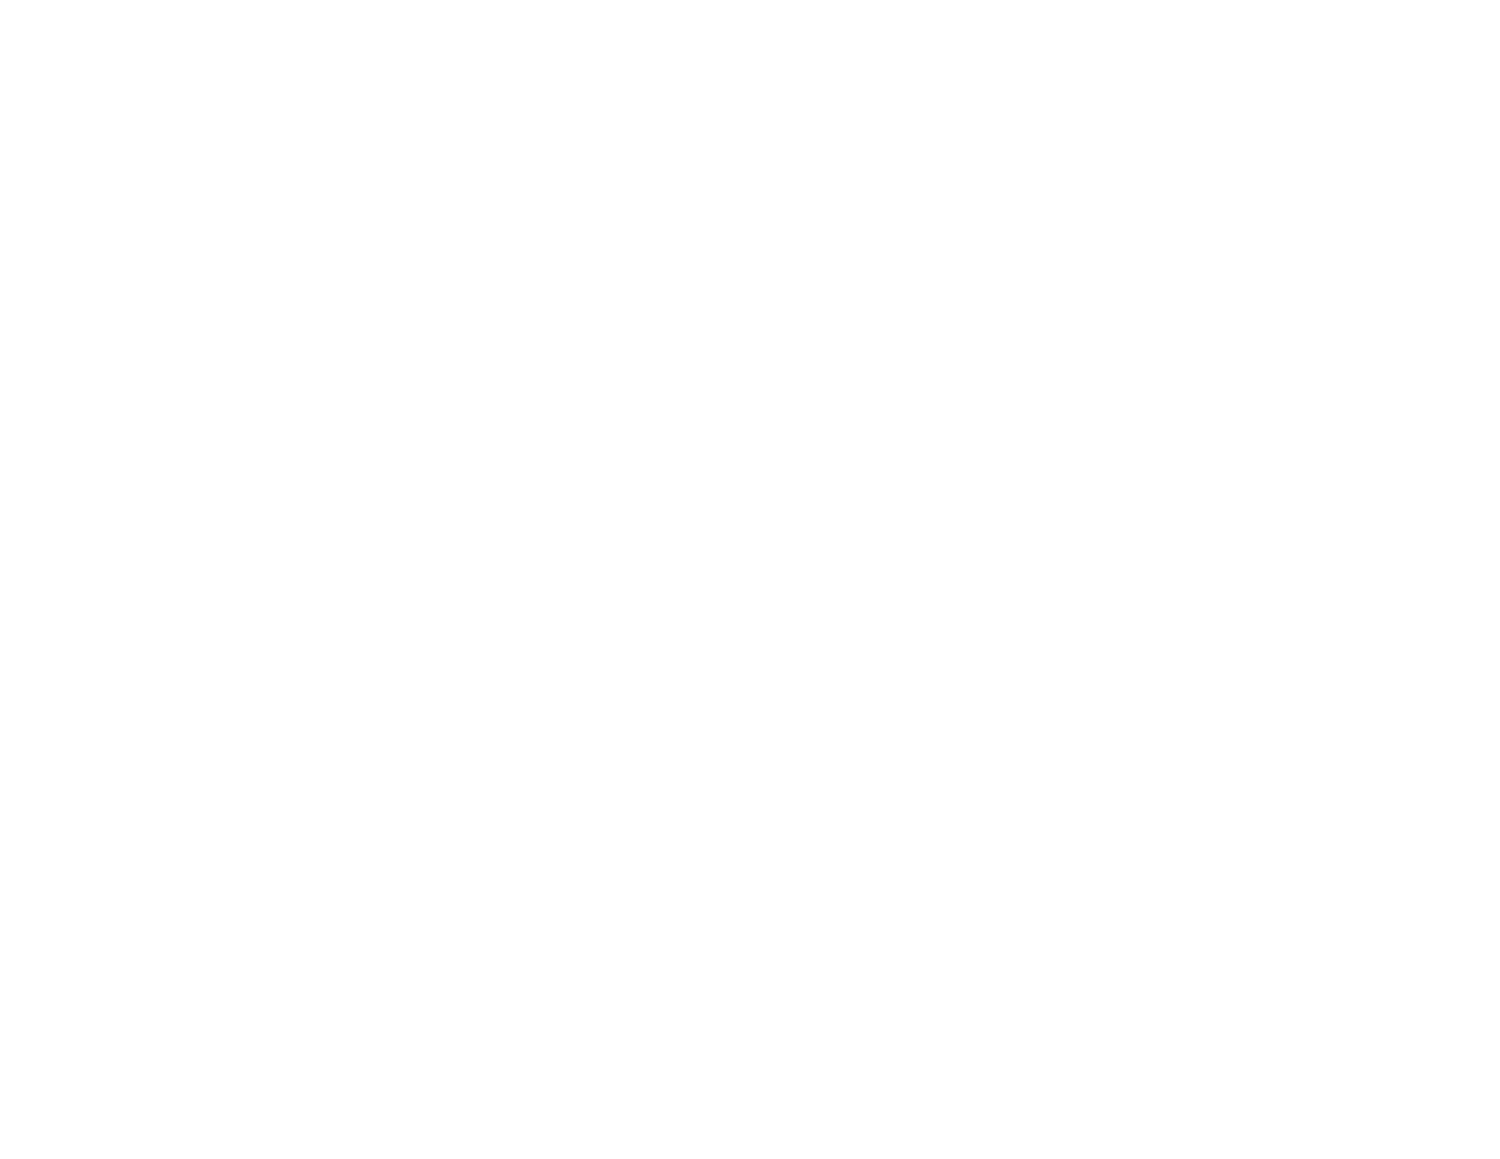 NOM YOURSELF